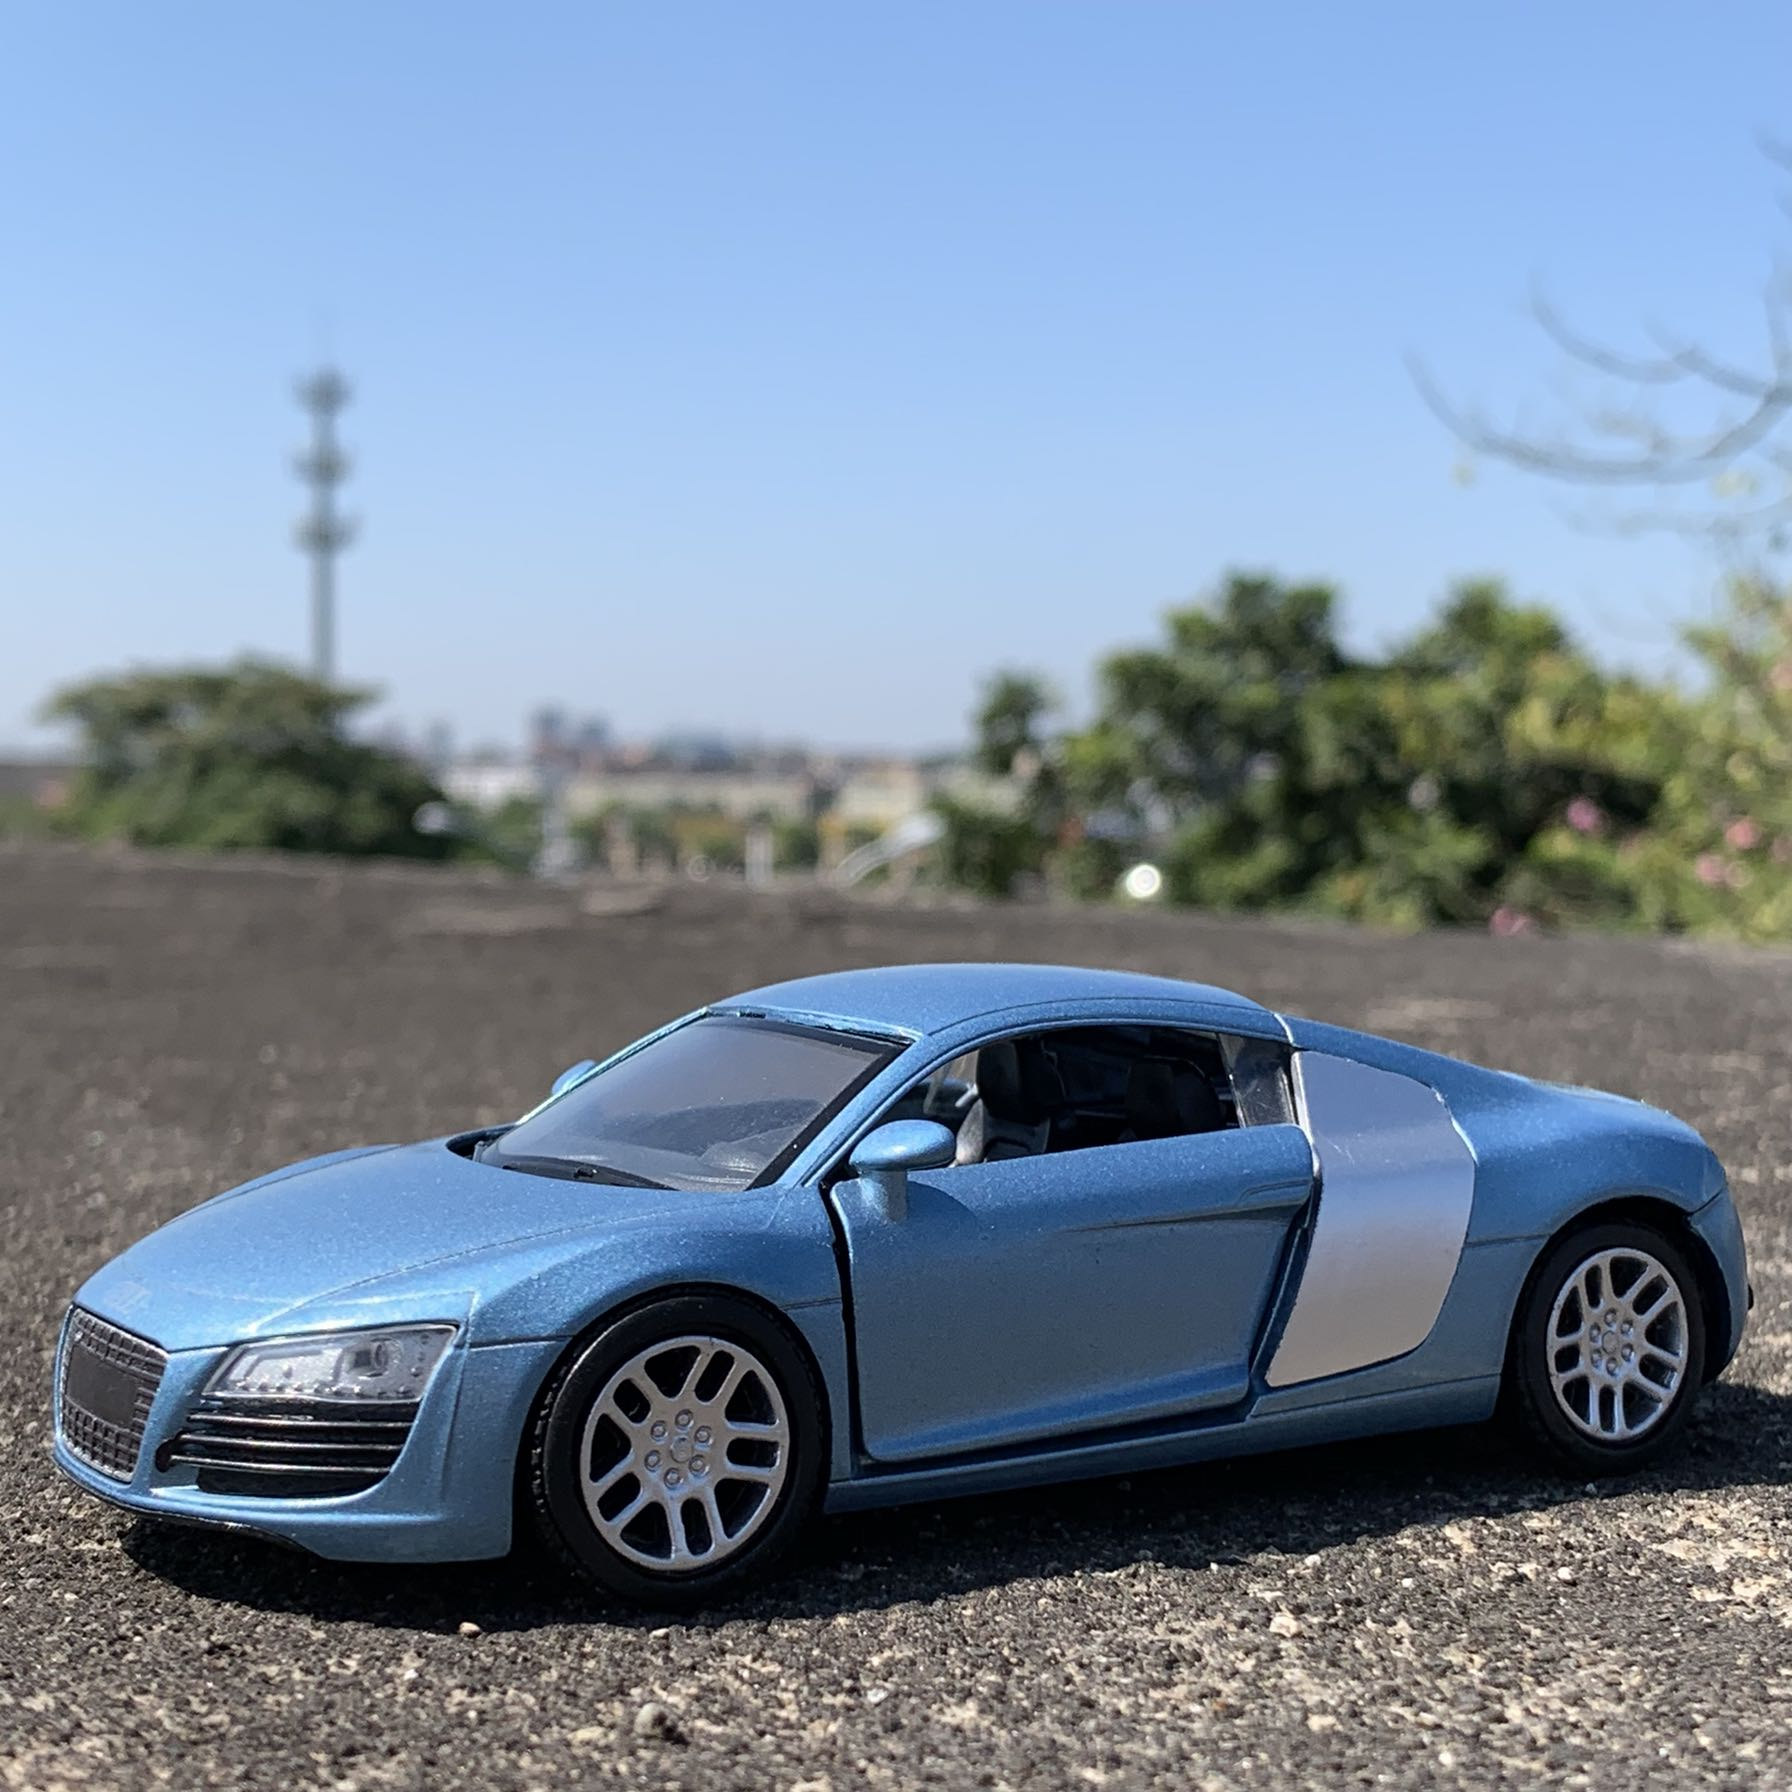 1:32 alloy model car for Audi R8 14cm long image